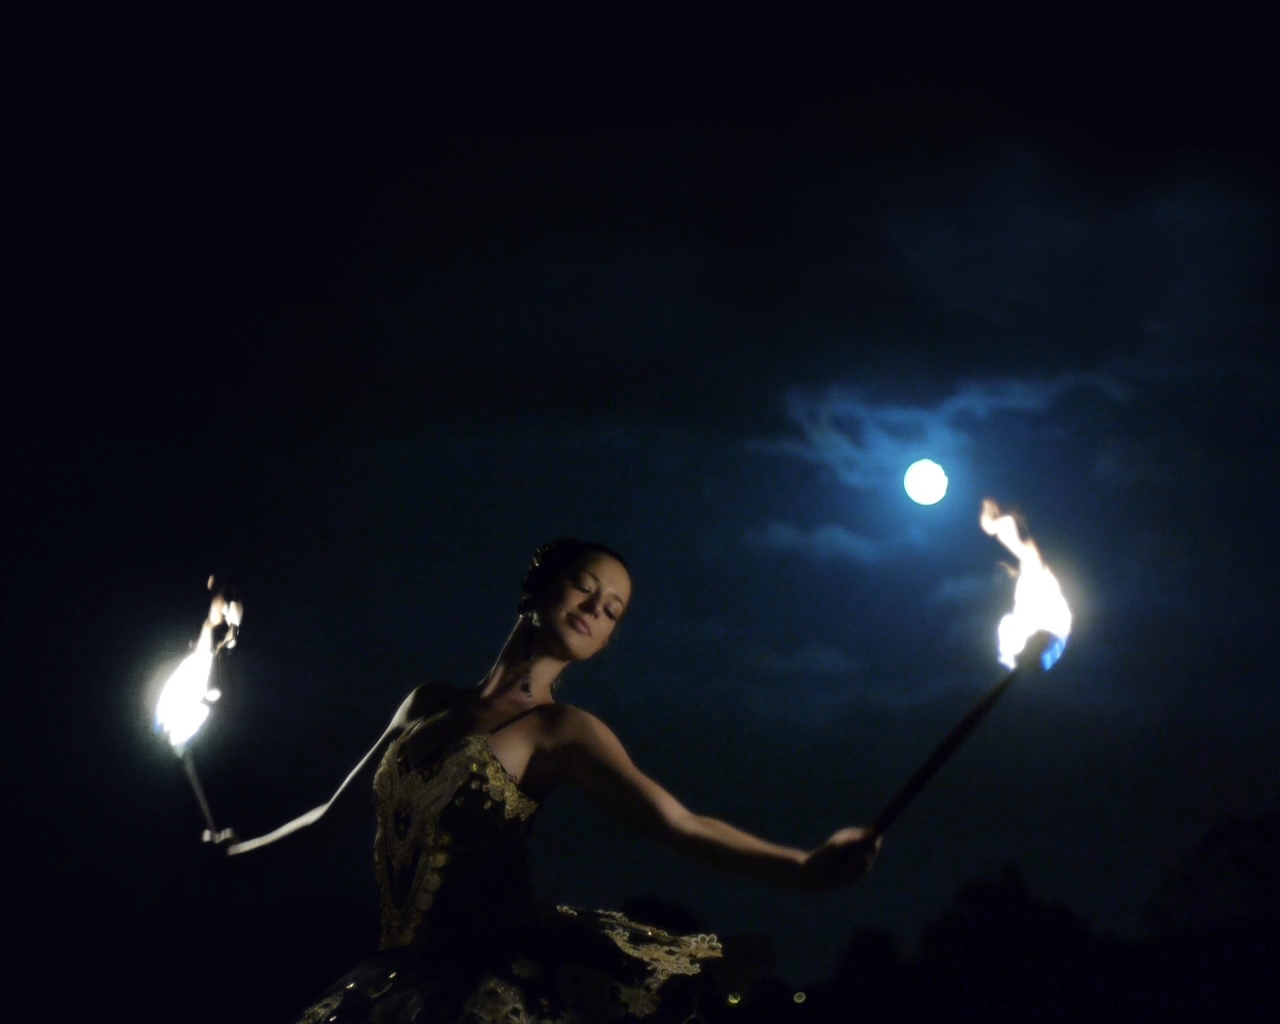 Fire ballet performance by moonlight